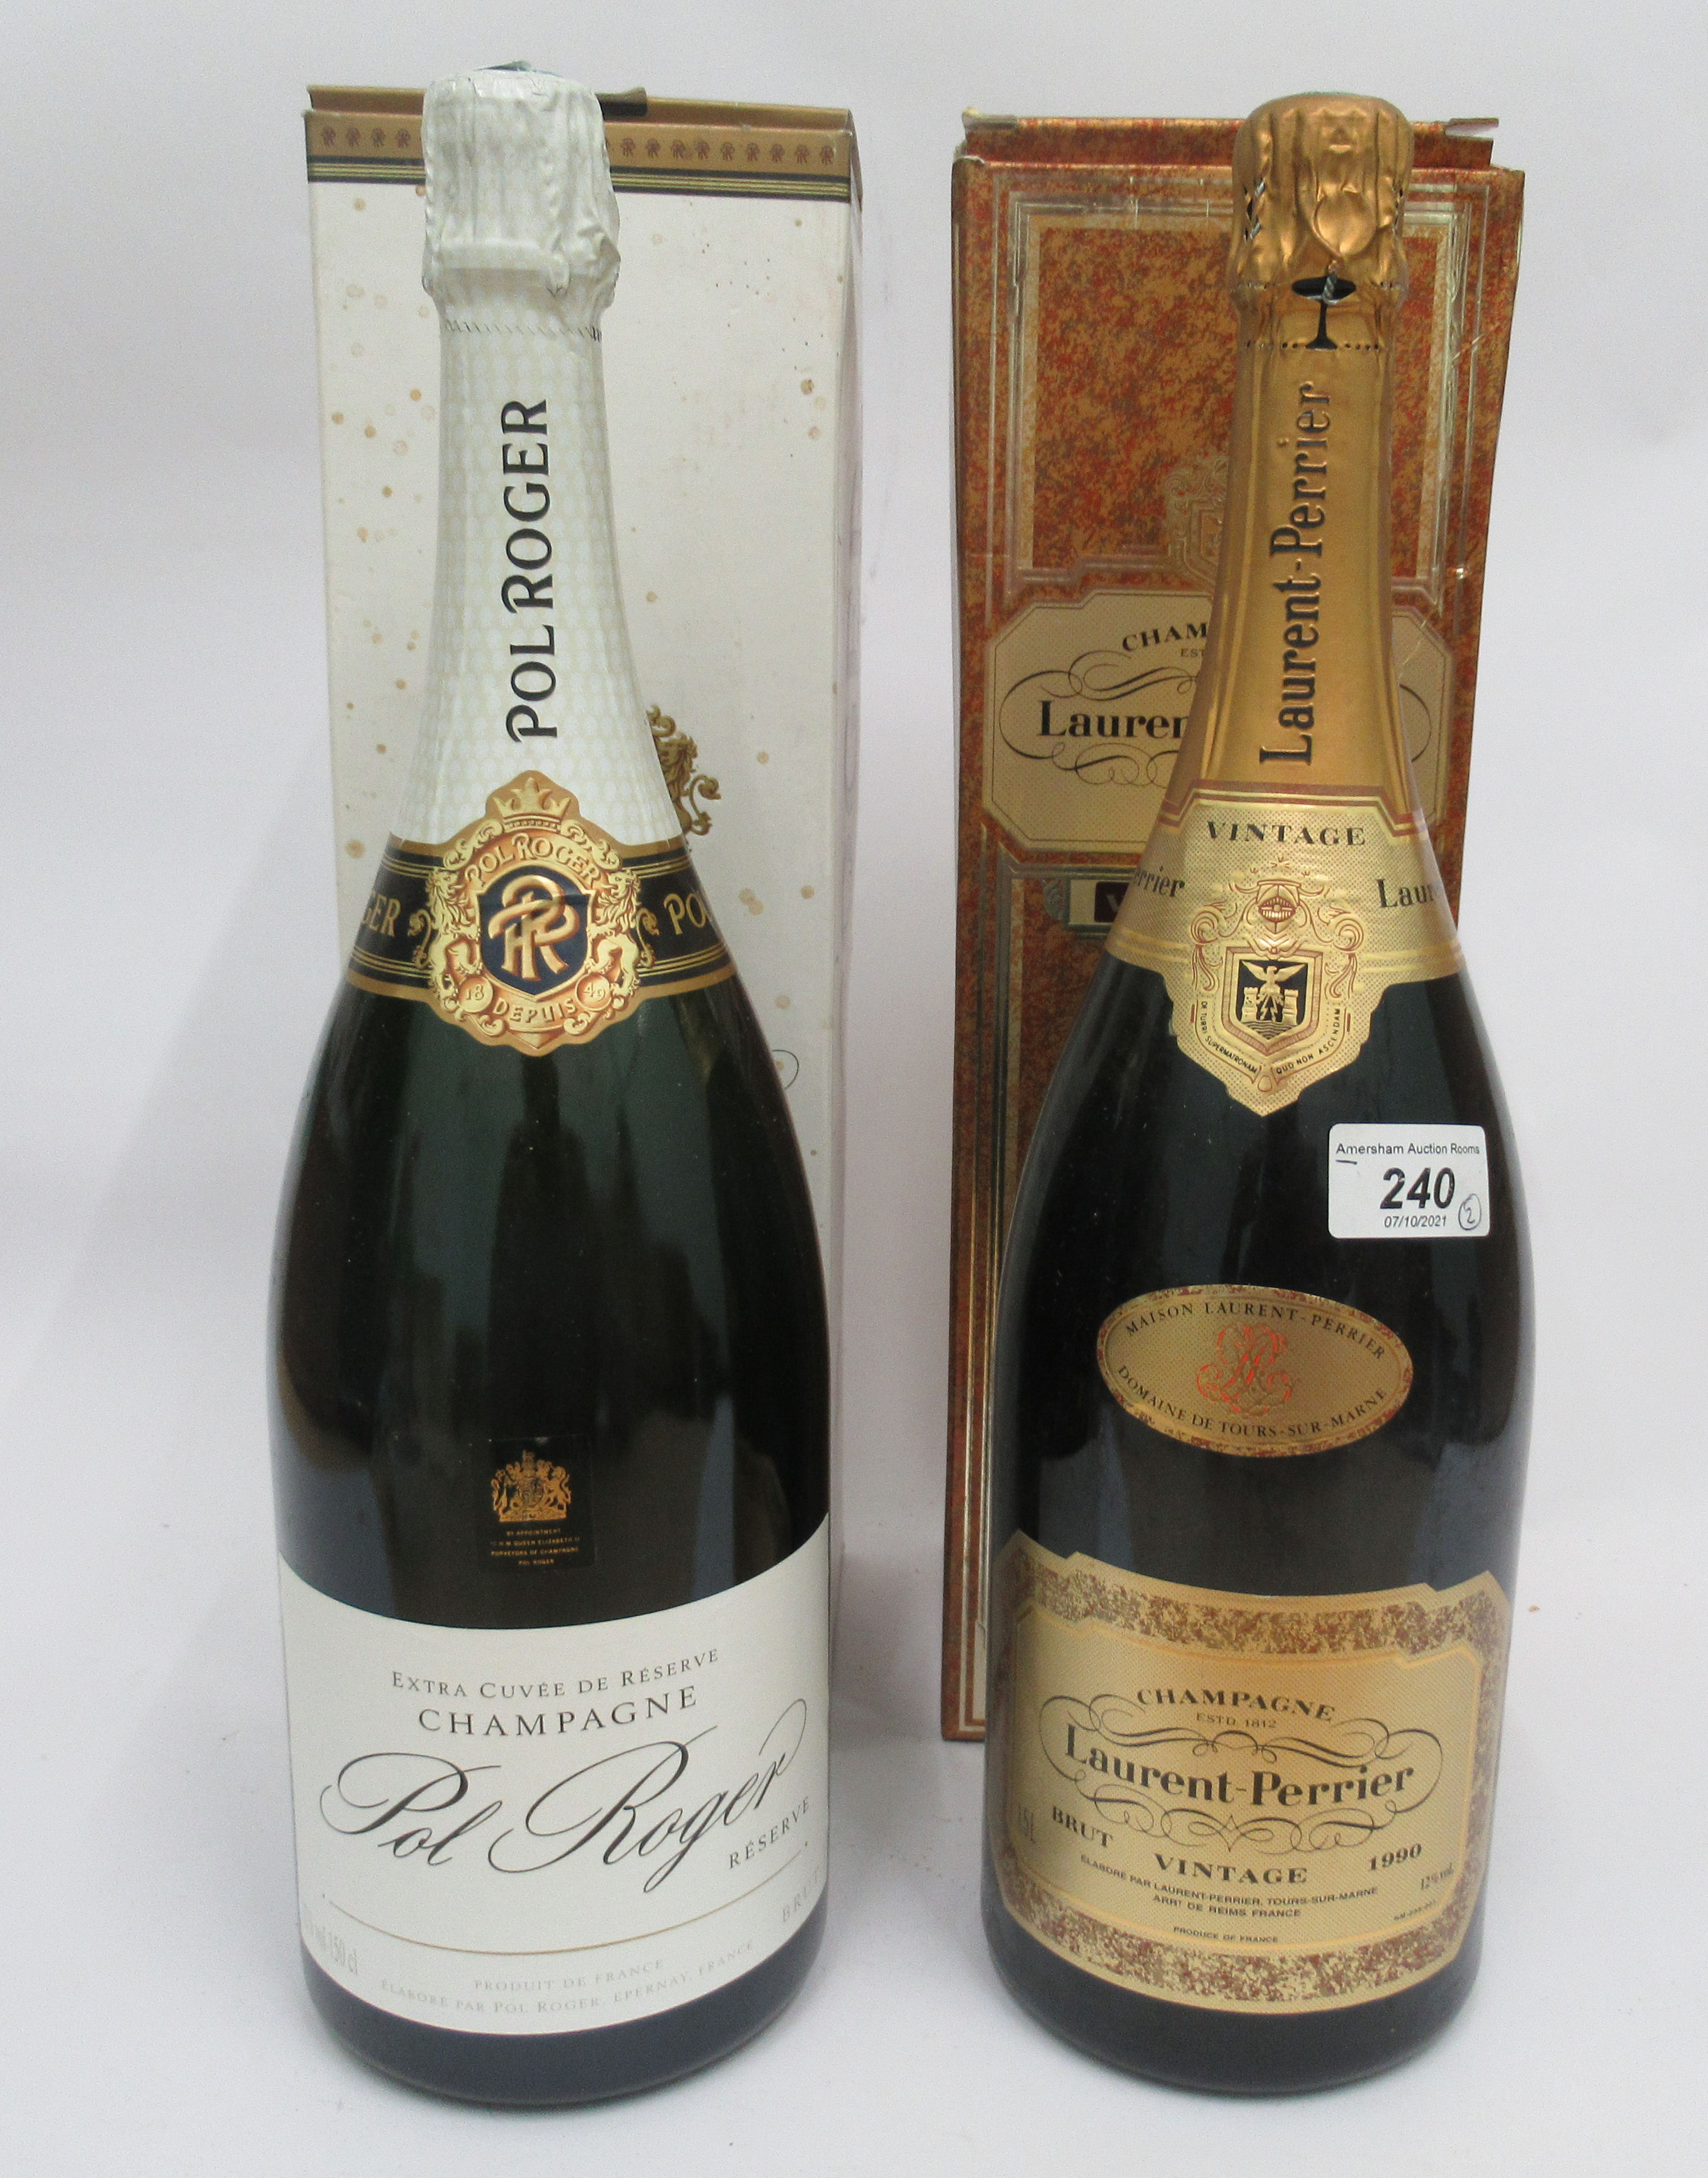 Wine, two magnums of Champagne, viz. a 1990 Laurent Perrier; and a Pol Roger Extra Cuvee Reserve